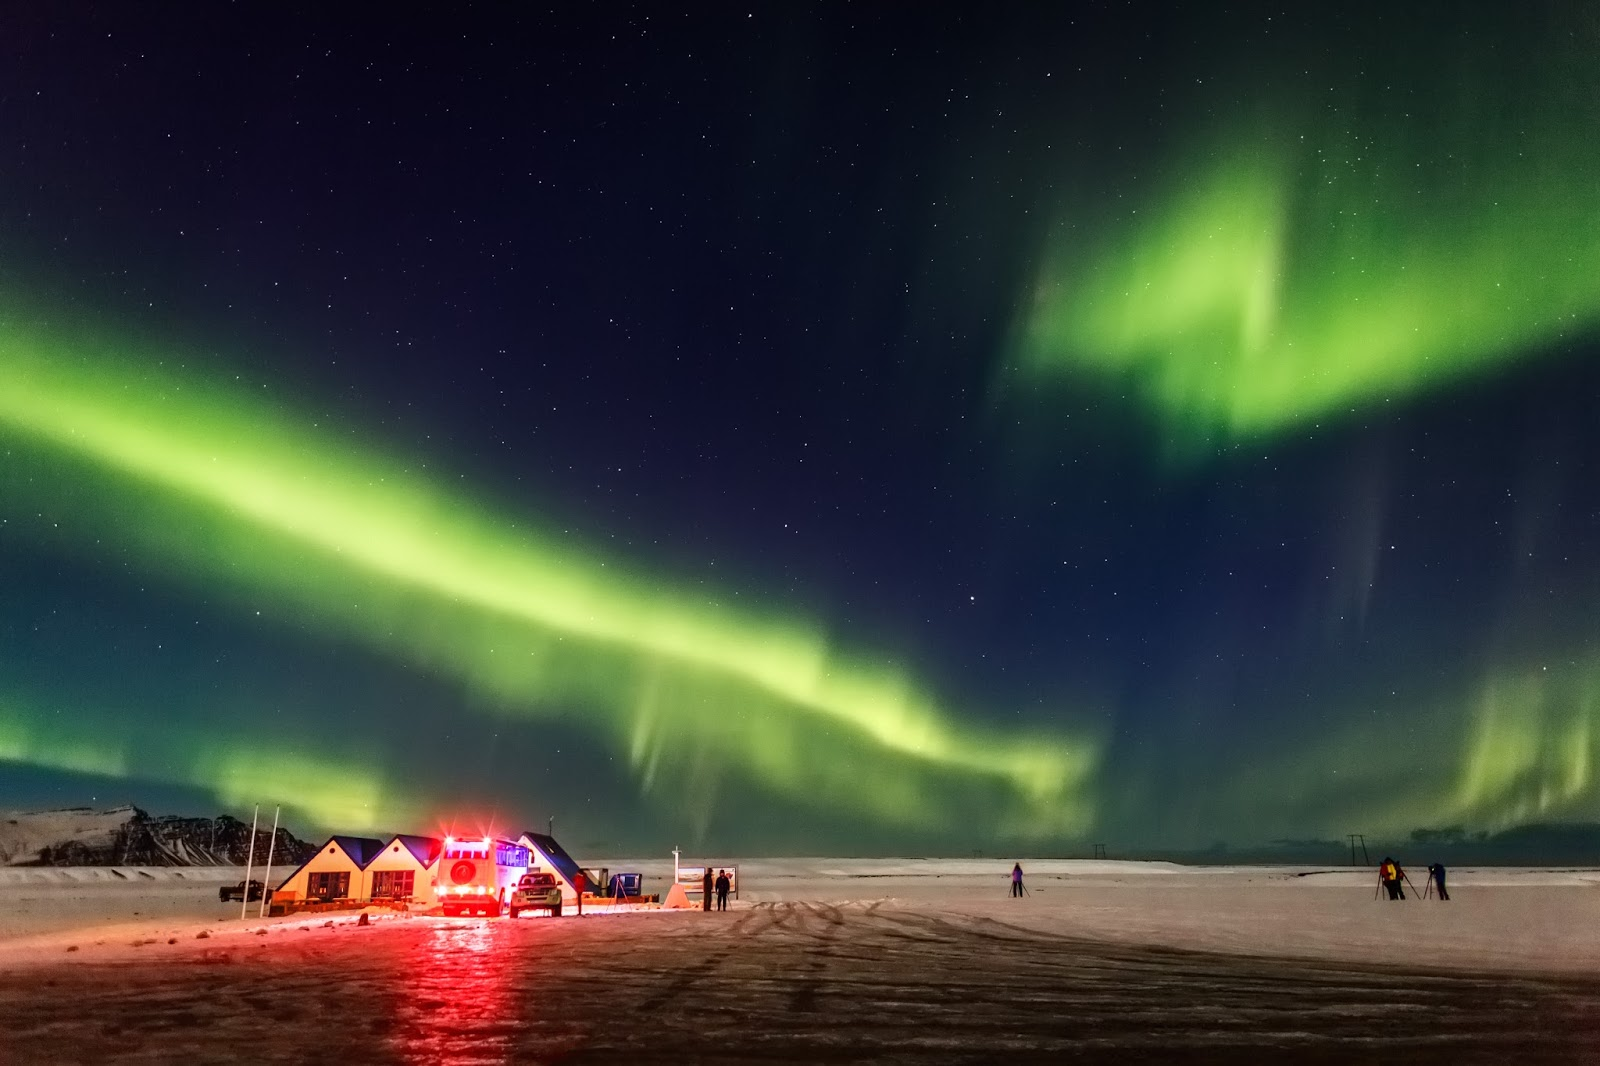 Family friendly Iceland - The Northern Lights